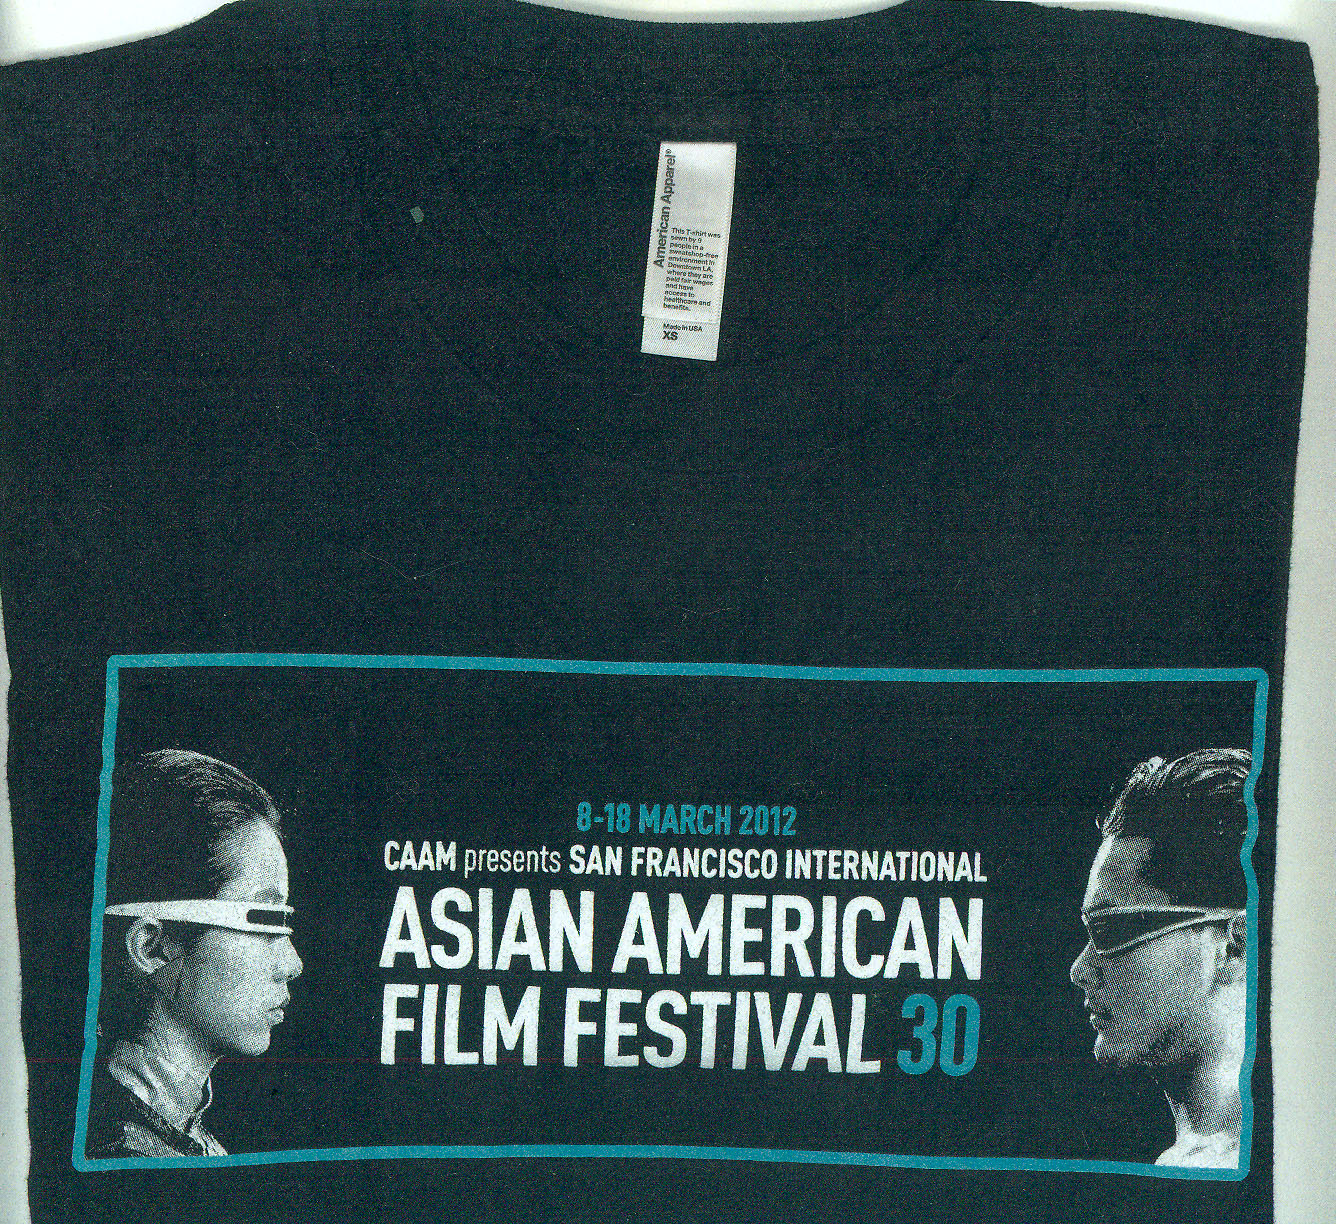 Commemorative T-shirt made for the 30th anniversary of the San Francisco International Asian American Film Festival in 2012. The image shows actors [[Tiana Alexandra